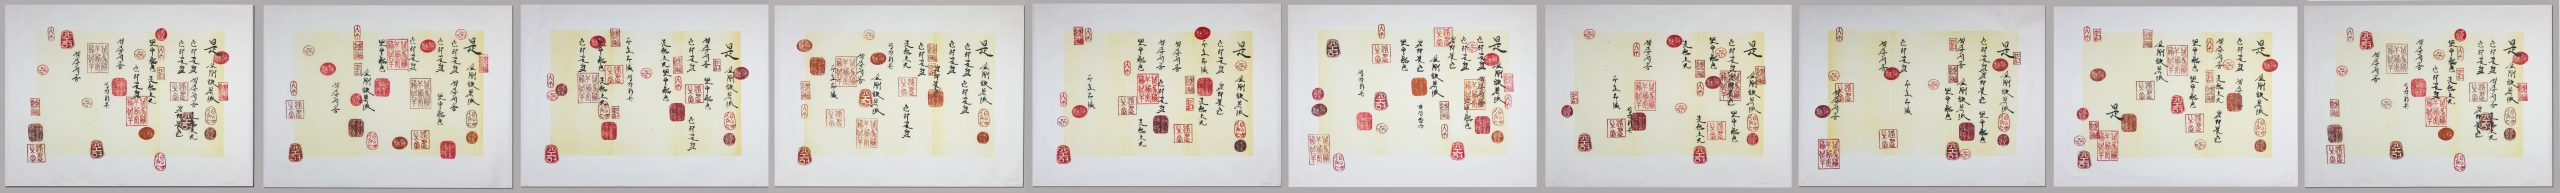 panel of red and black ink on rice papers